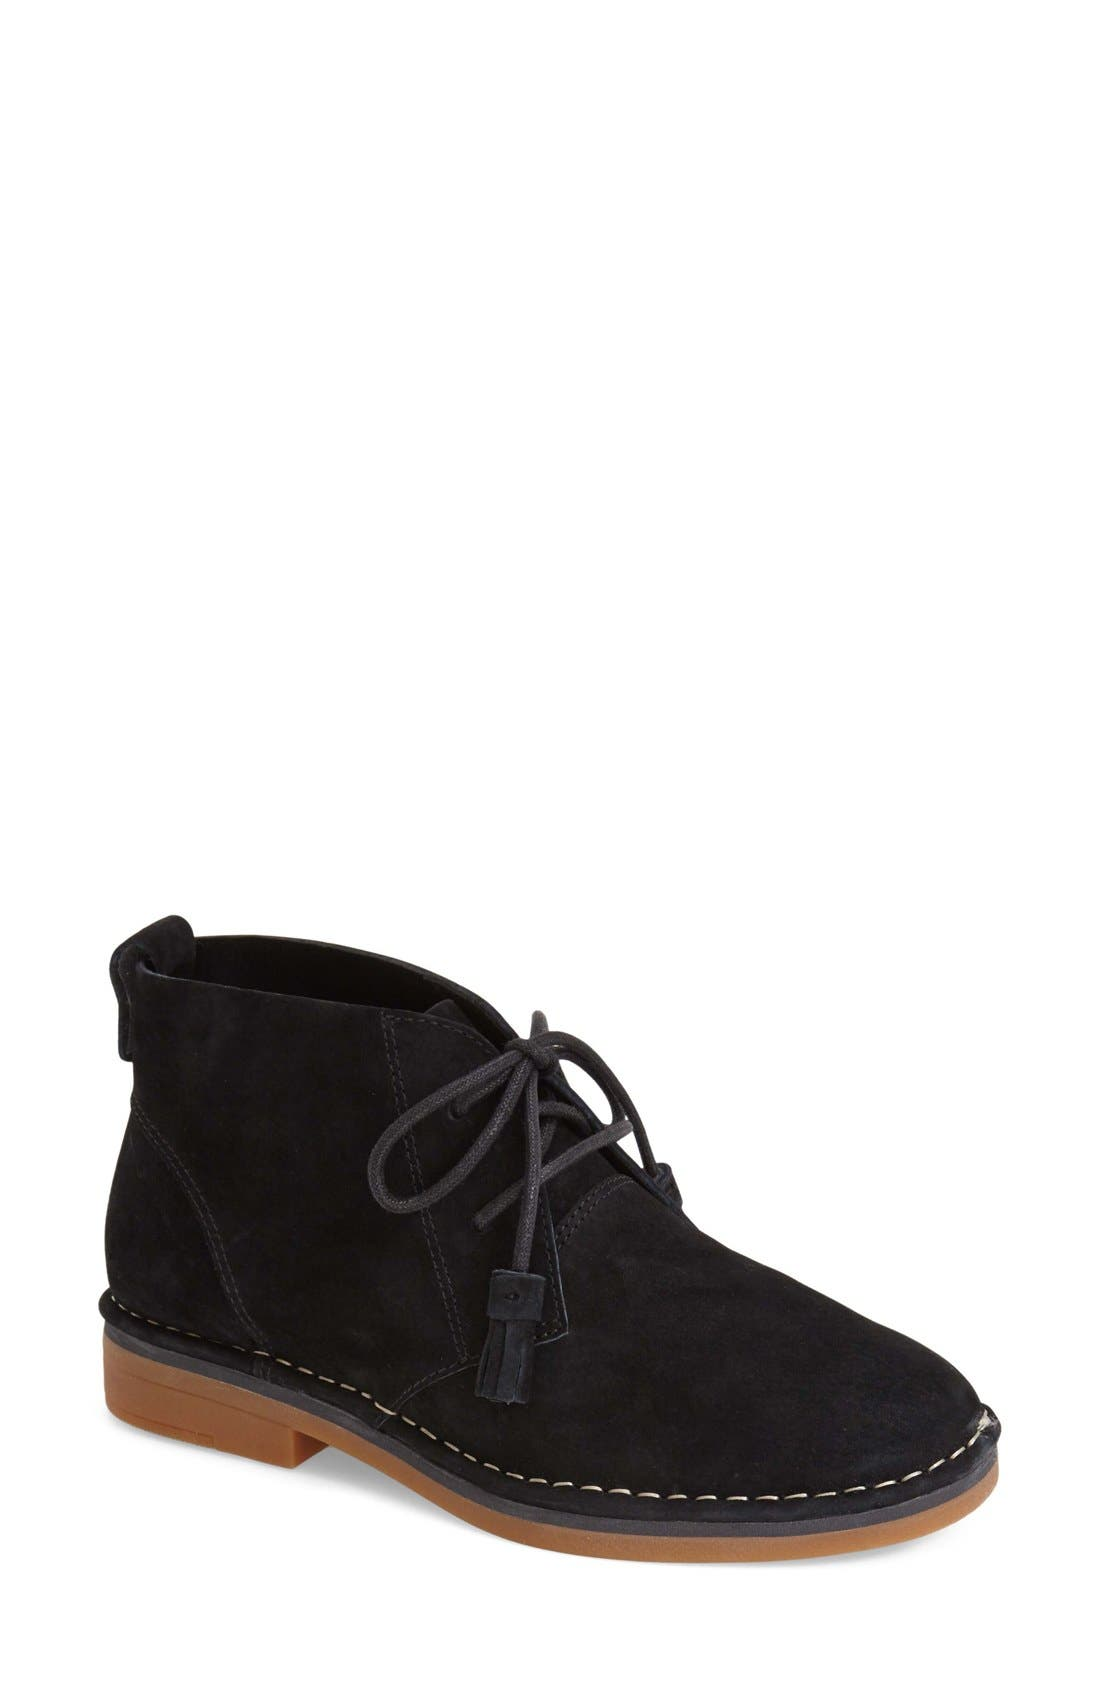 HUSH PUPPIES® 'Cyra Catelyn' Chukka Boot